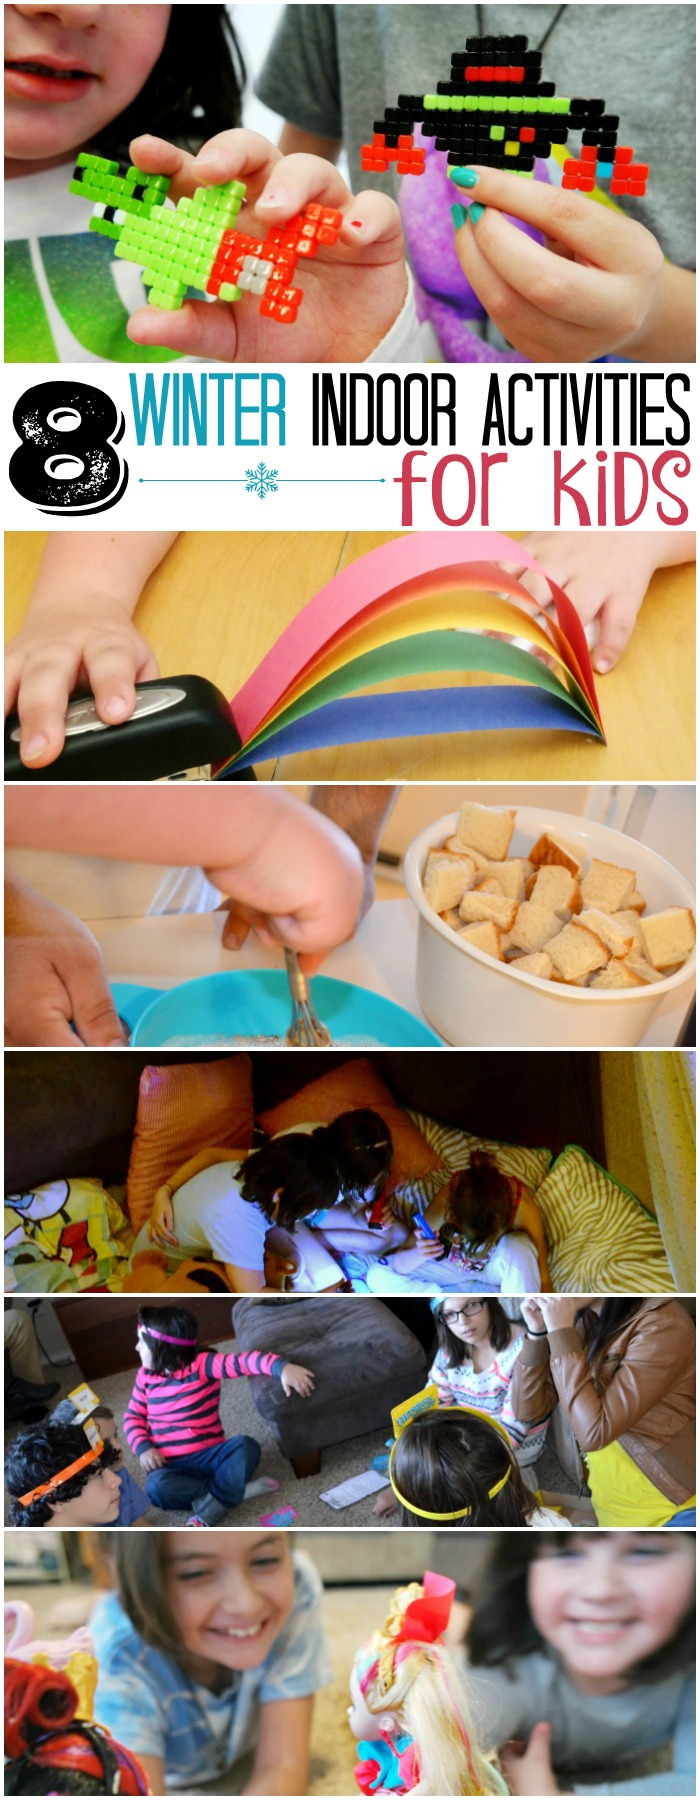 8 Winter Indoor Activities For Kids